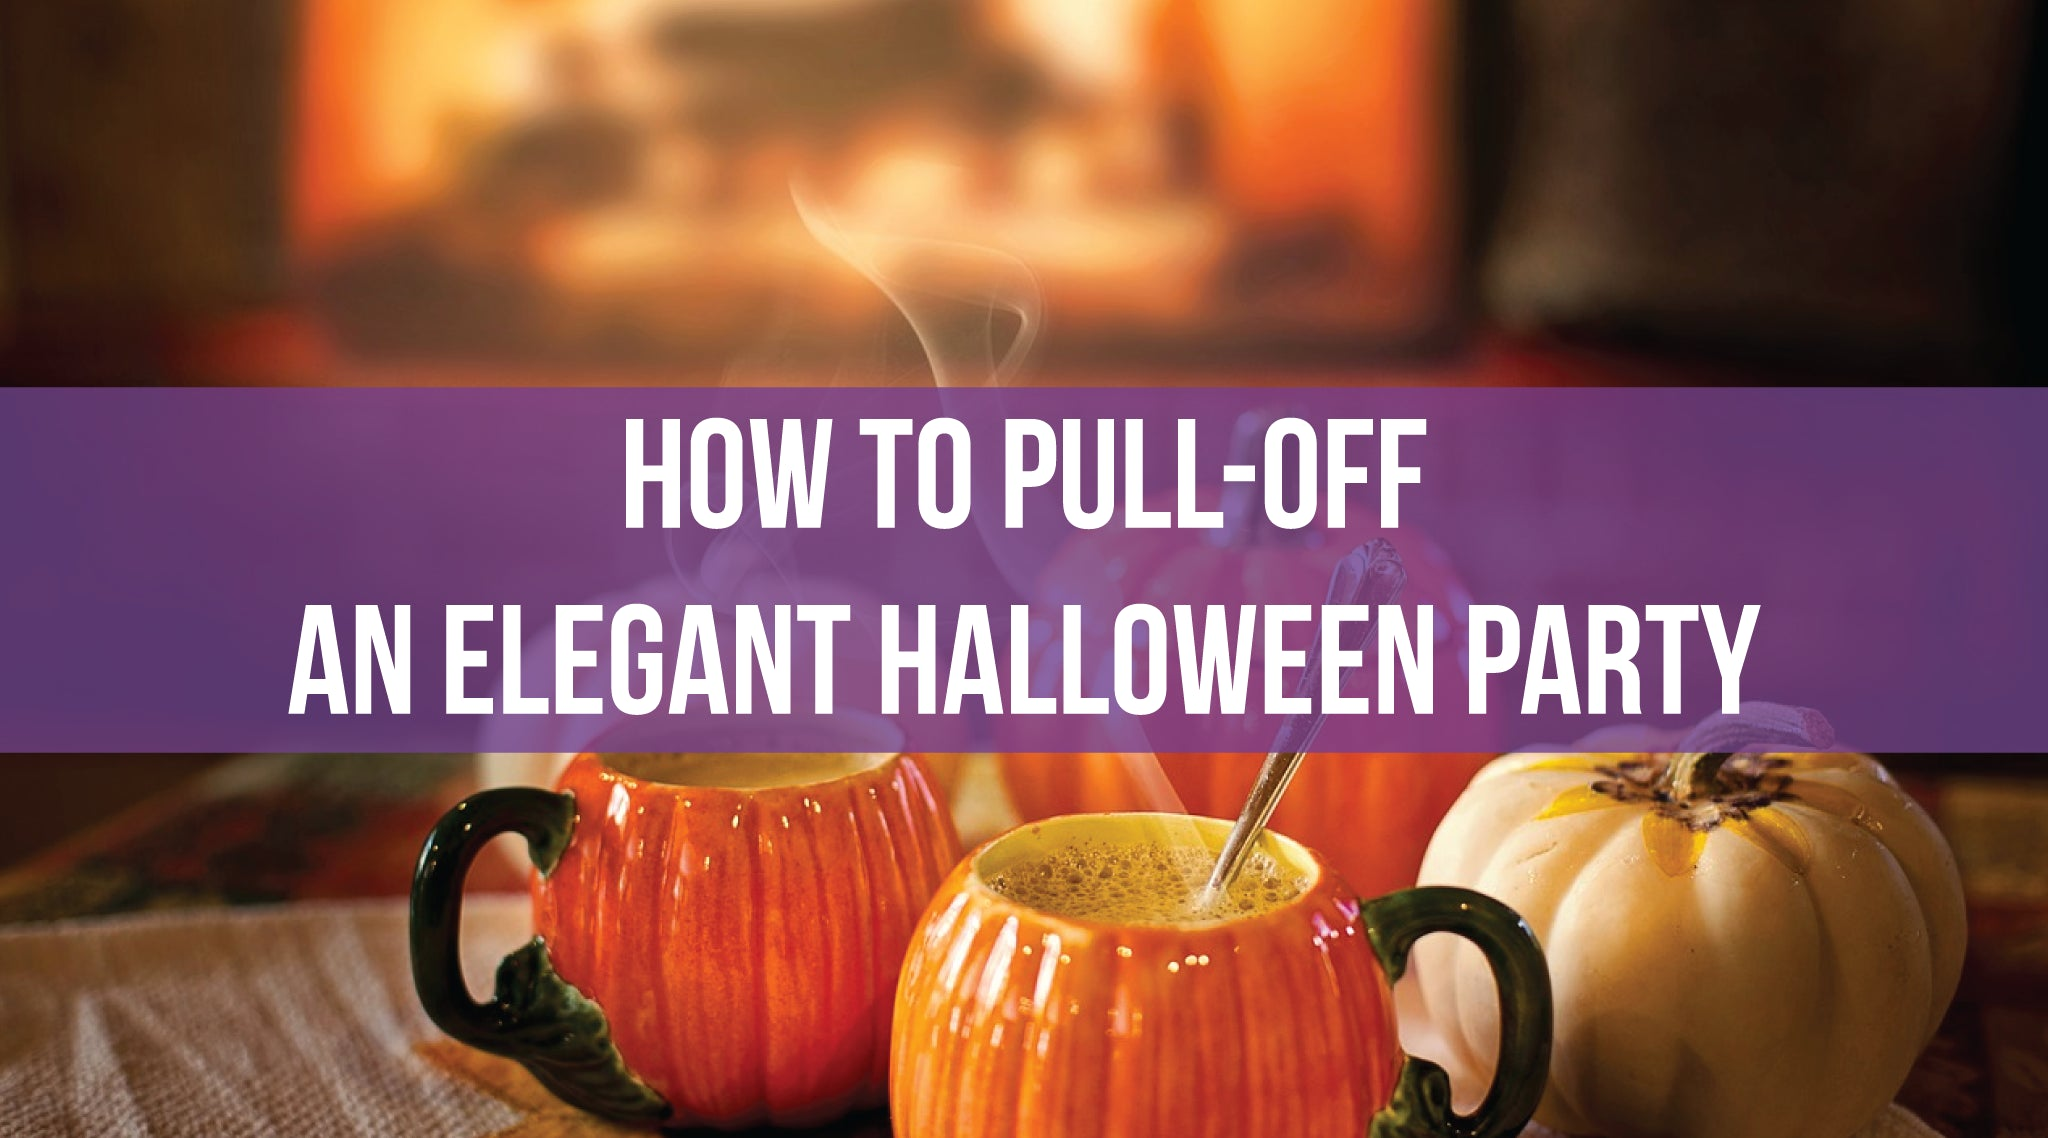 how to pull-off an elegant halloween party - ella celebration